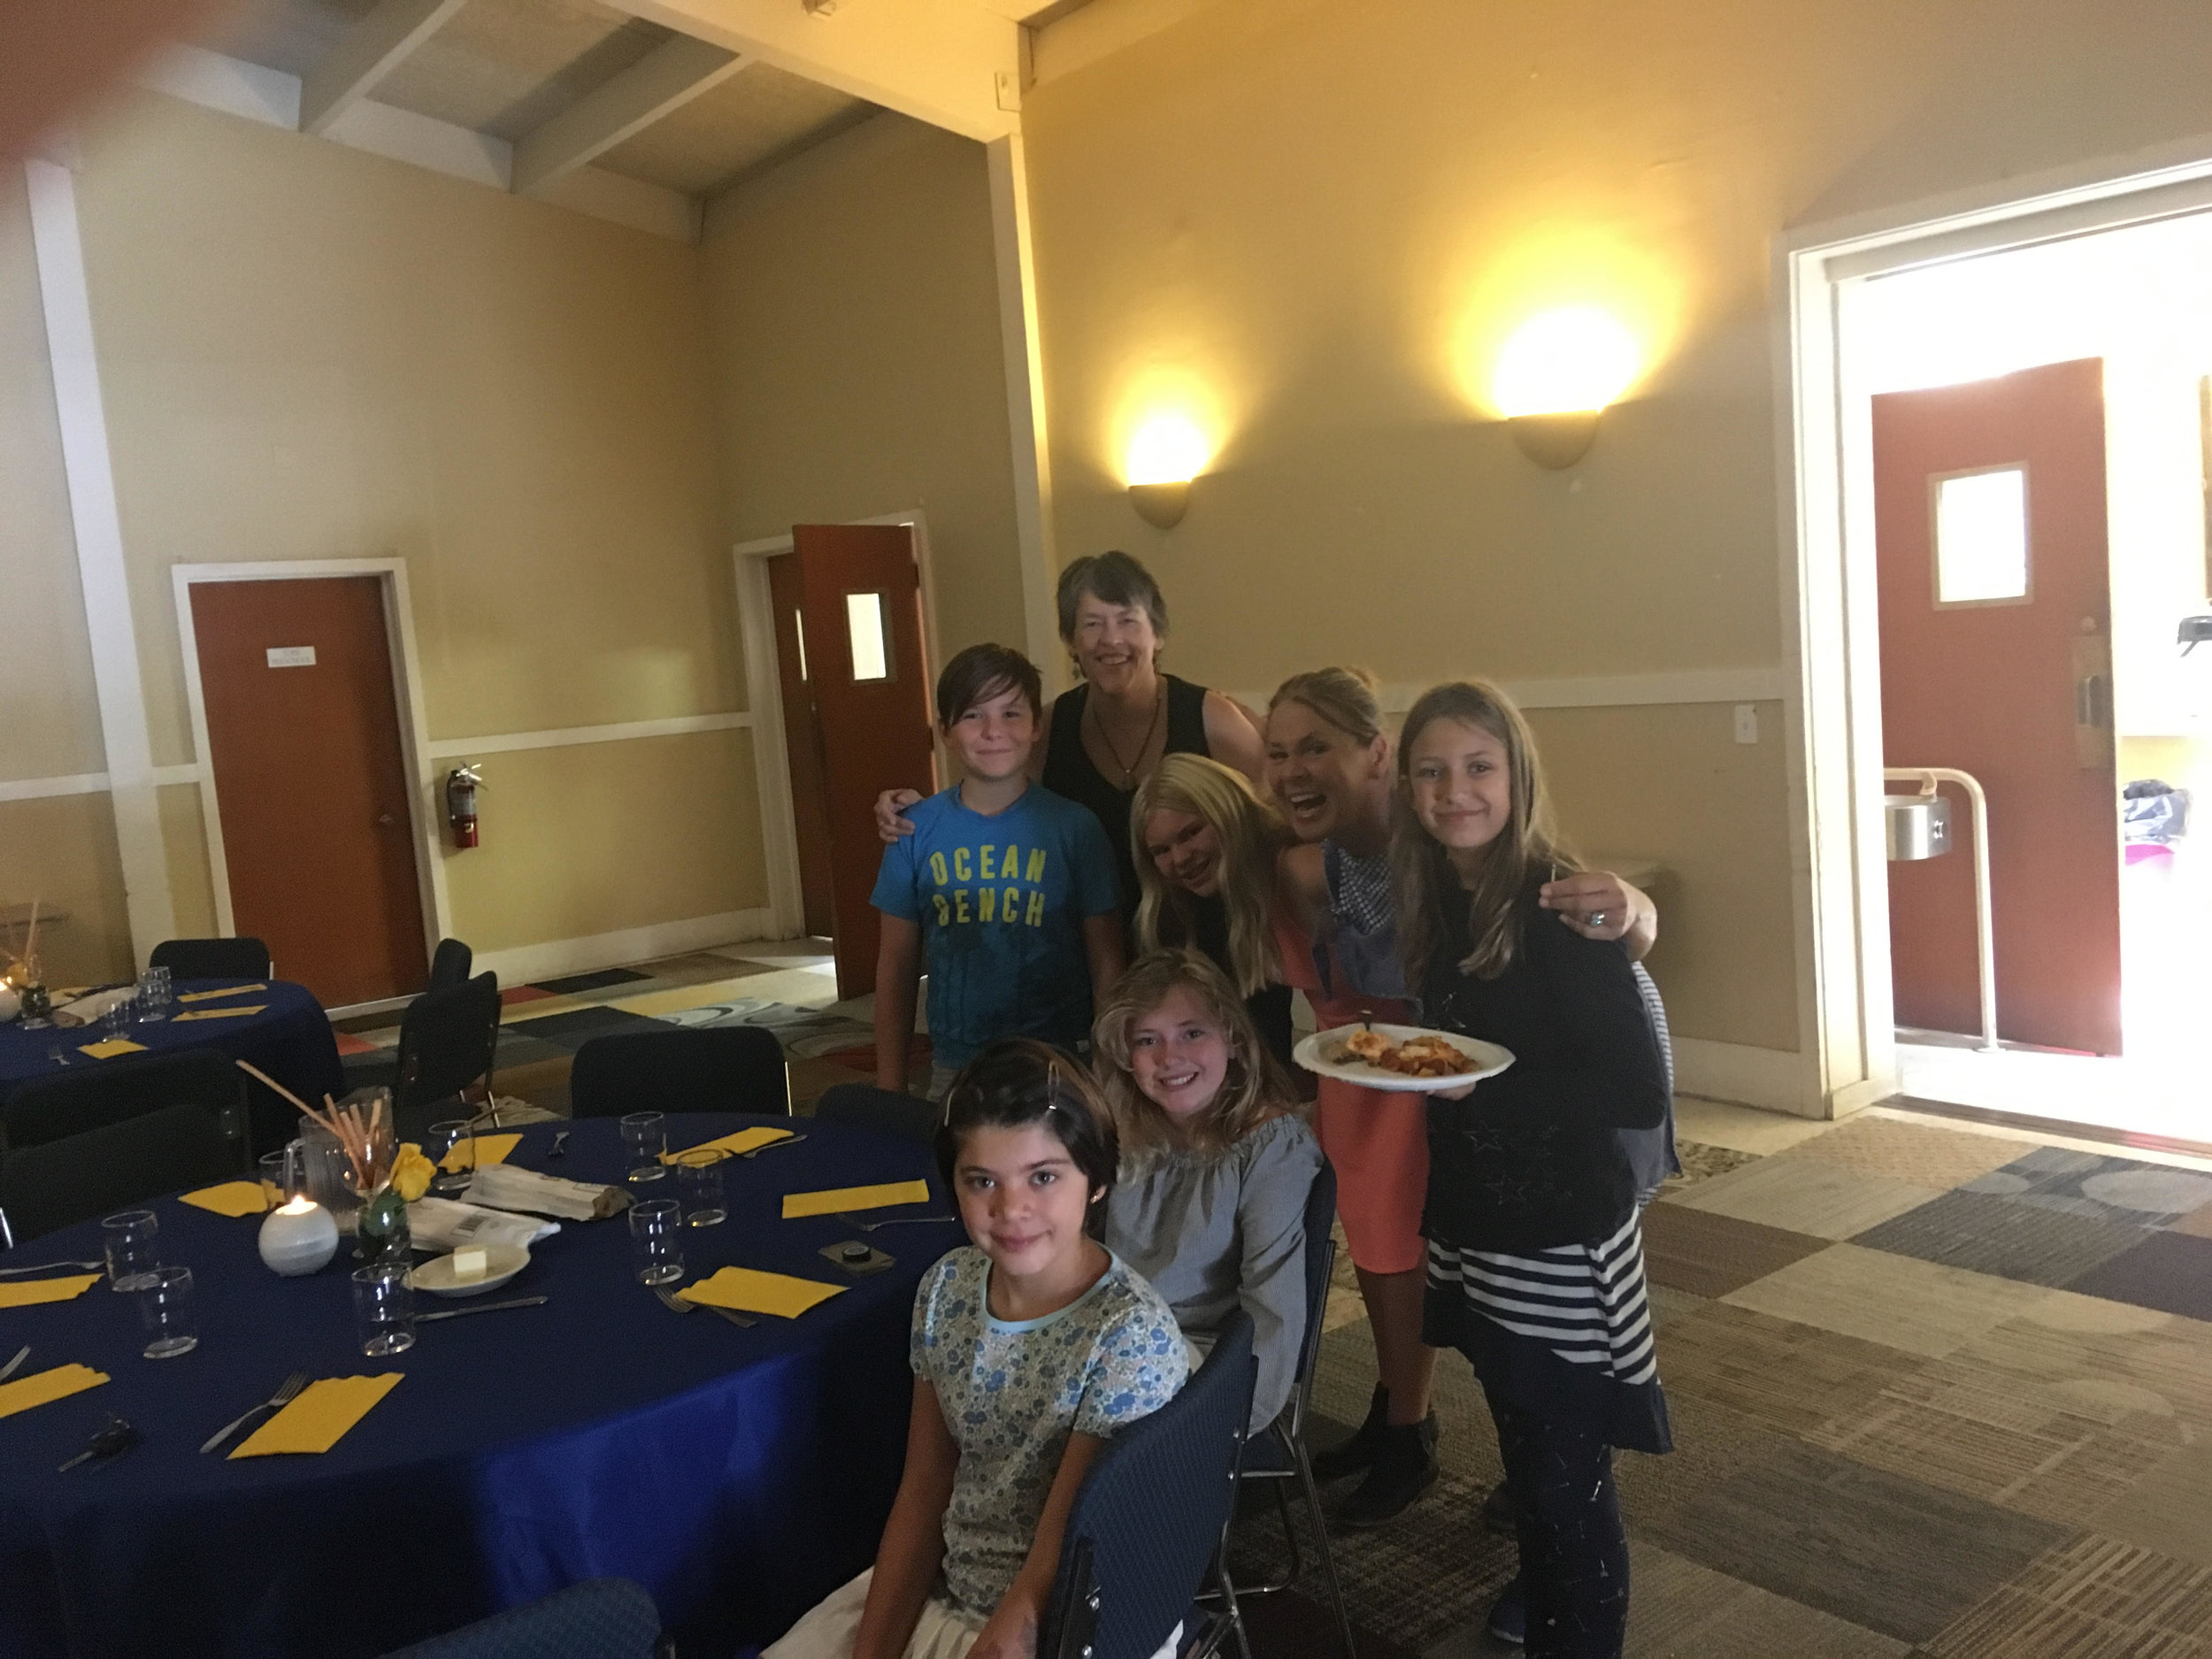 Children helped decorating tables for a church meeting.